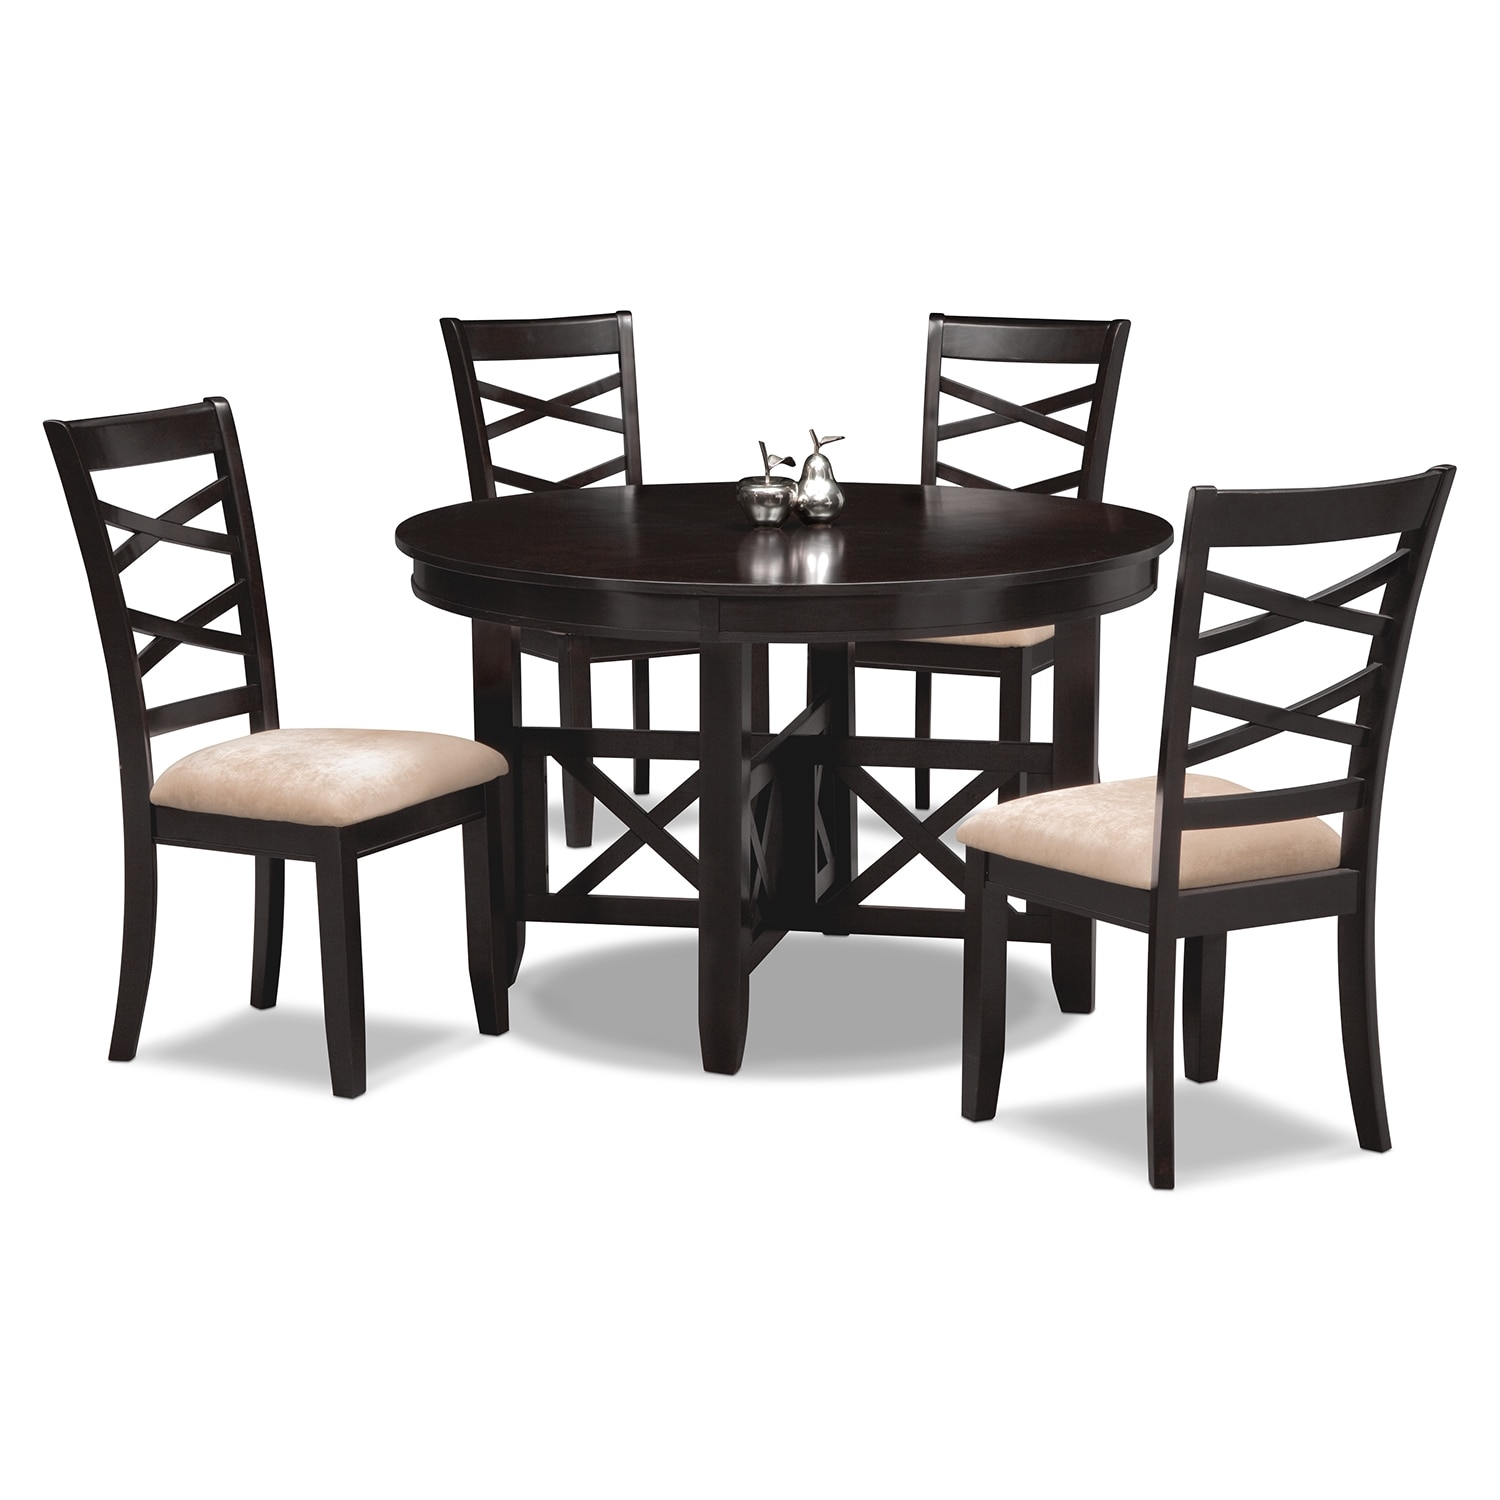 City Furniture Dining Room American Signature Furniture Dining Table American Signature